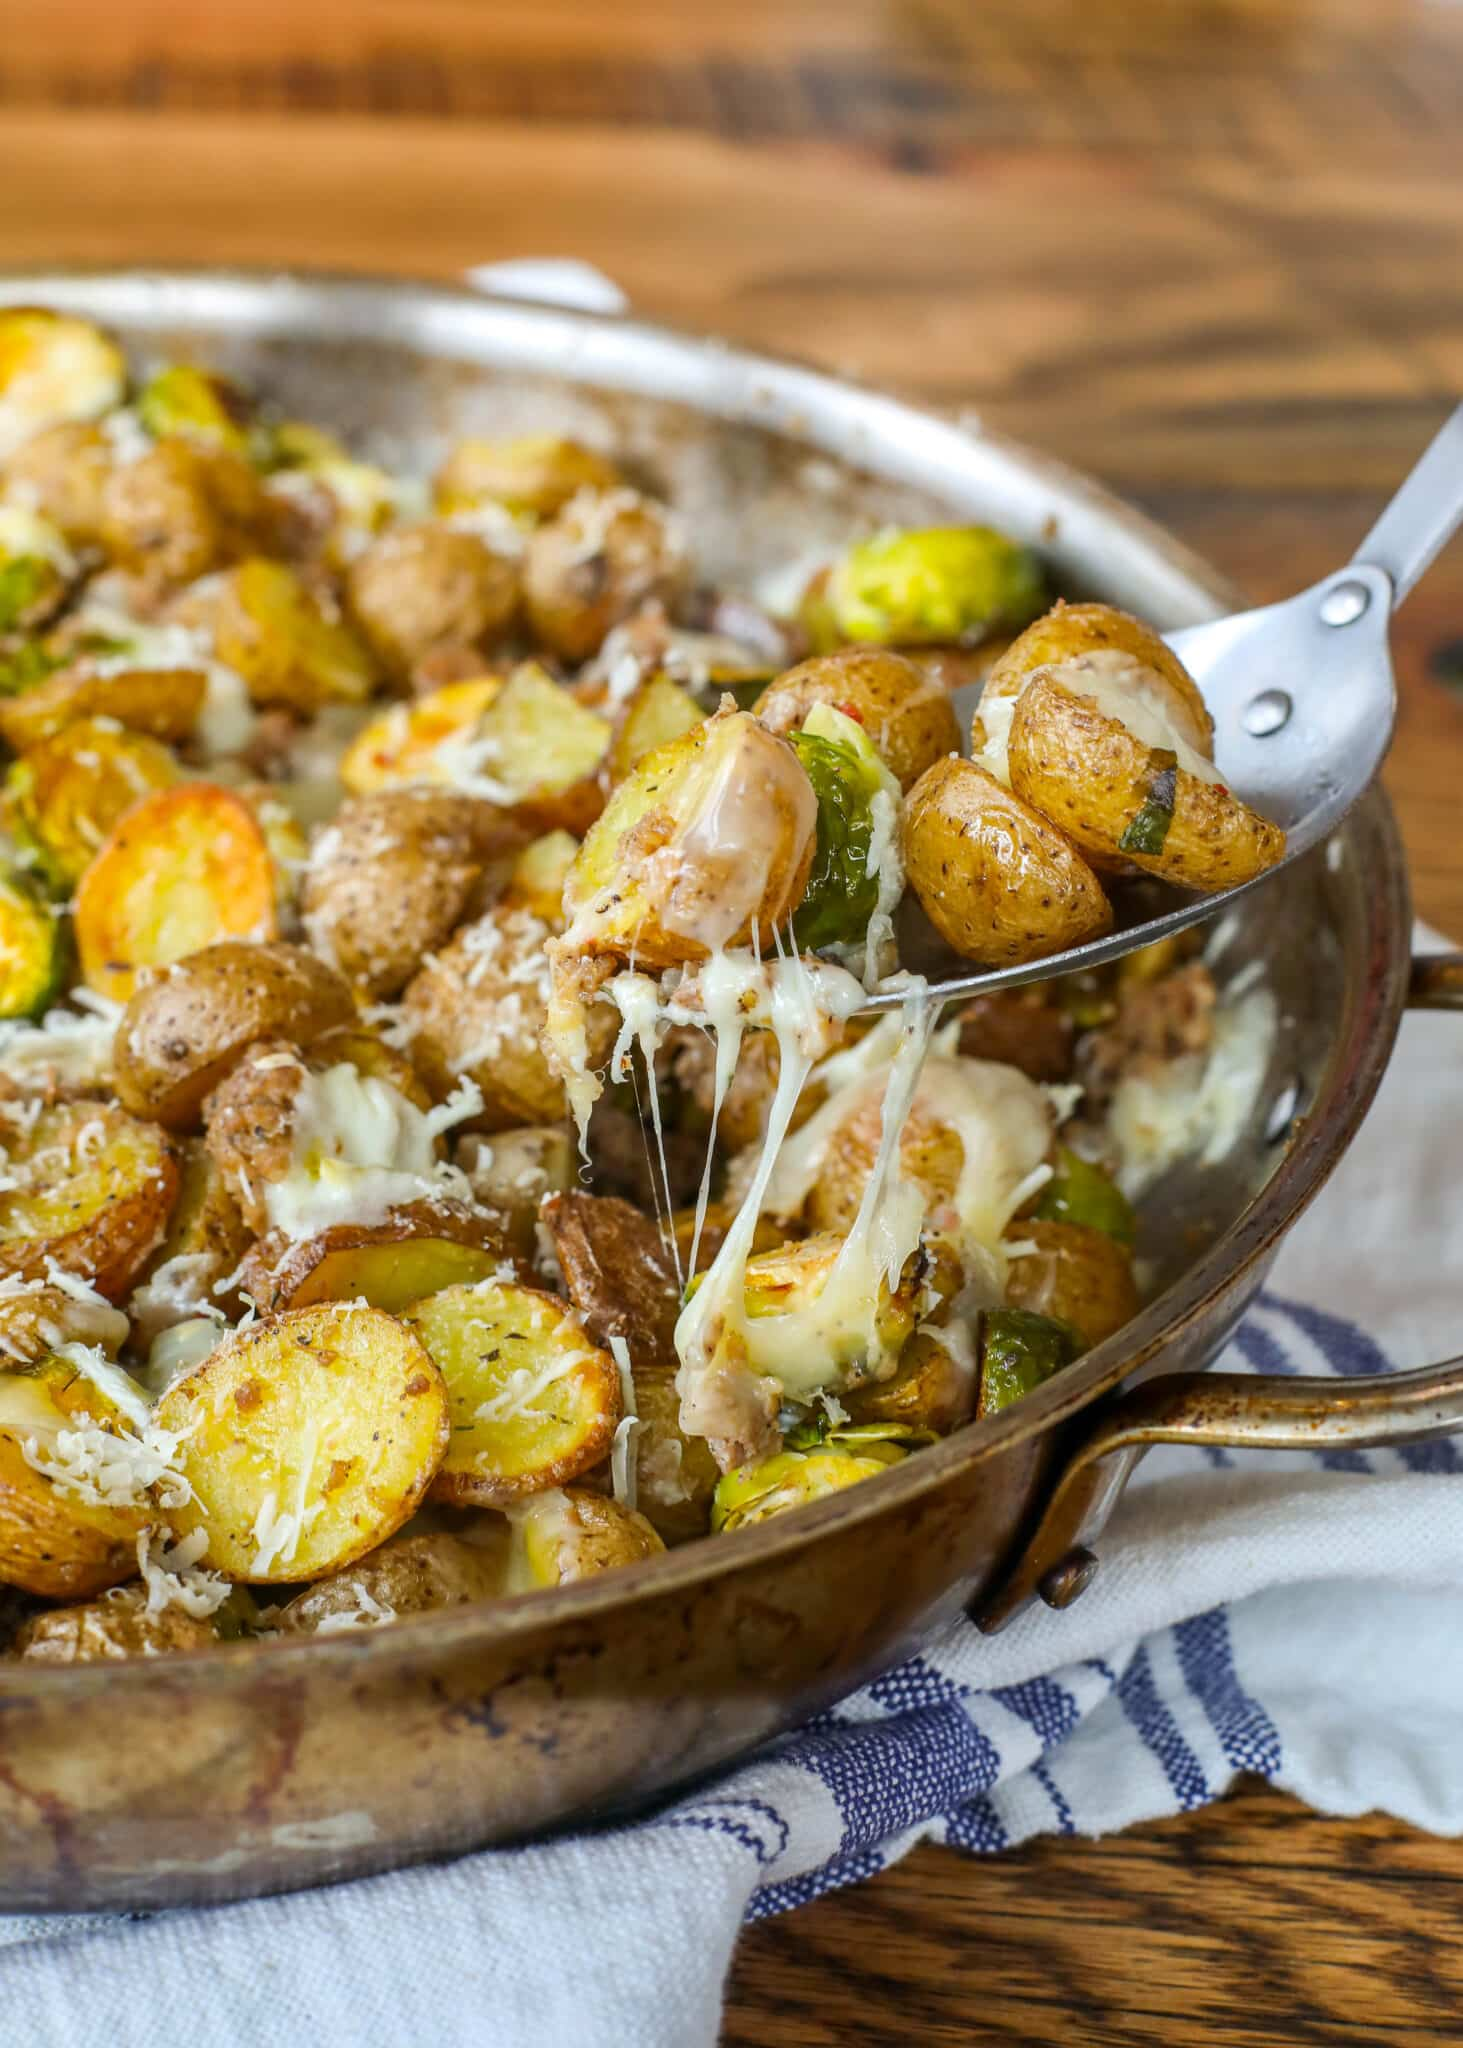 Potatoes + Brussels Sprouts + Sausage + Cheese adds up to one spectacular meal!